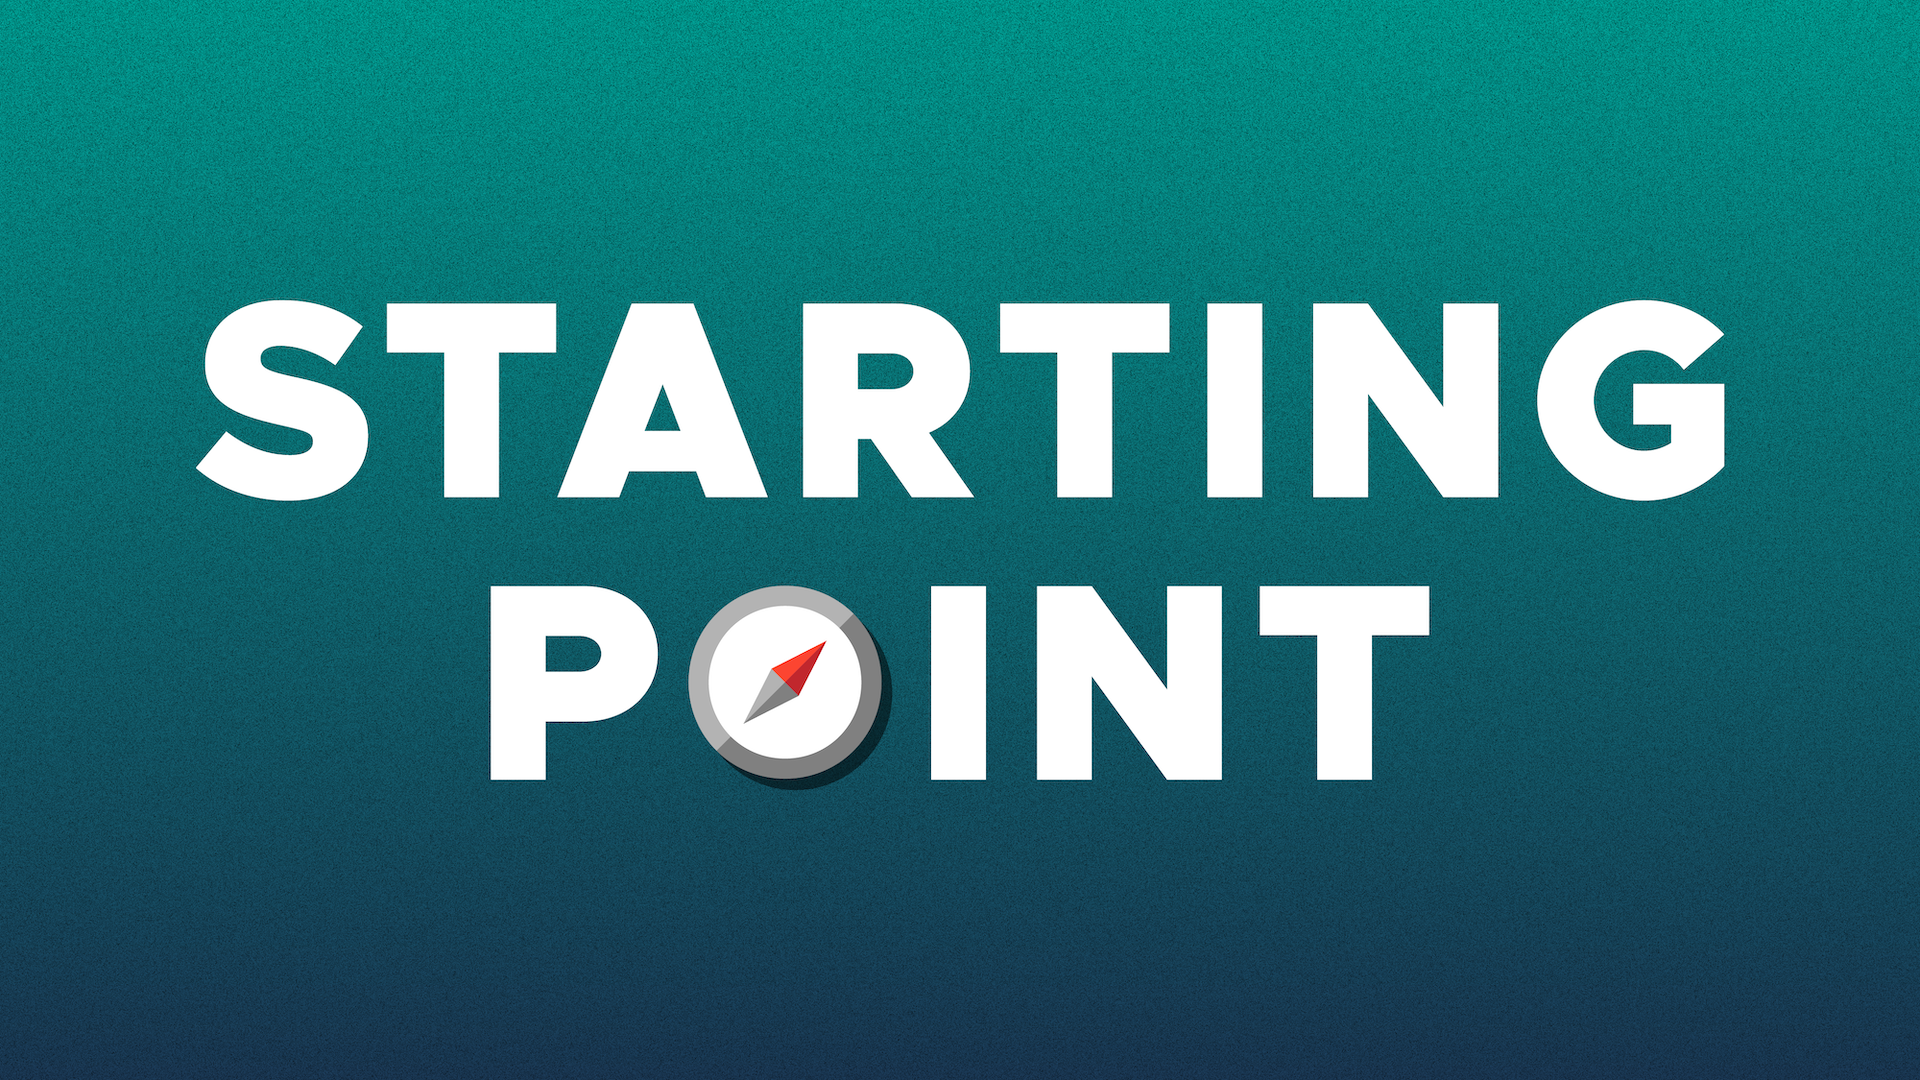 StartingPoint-compass-website image